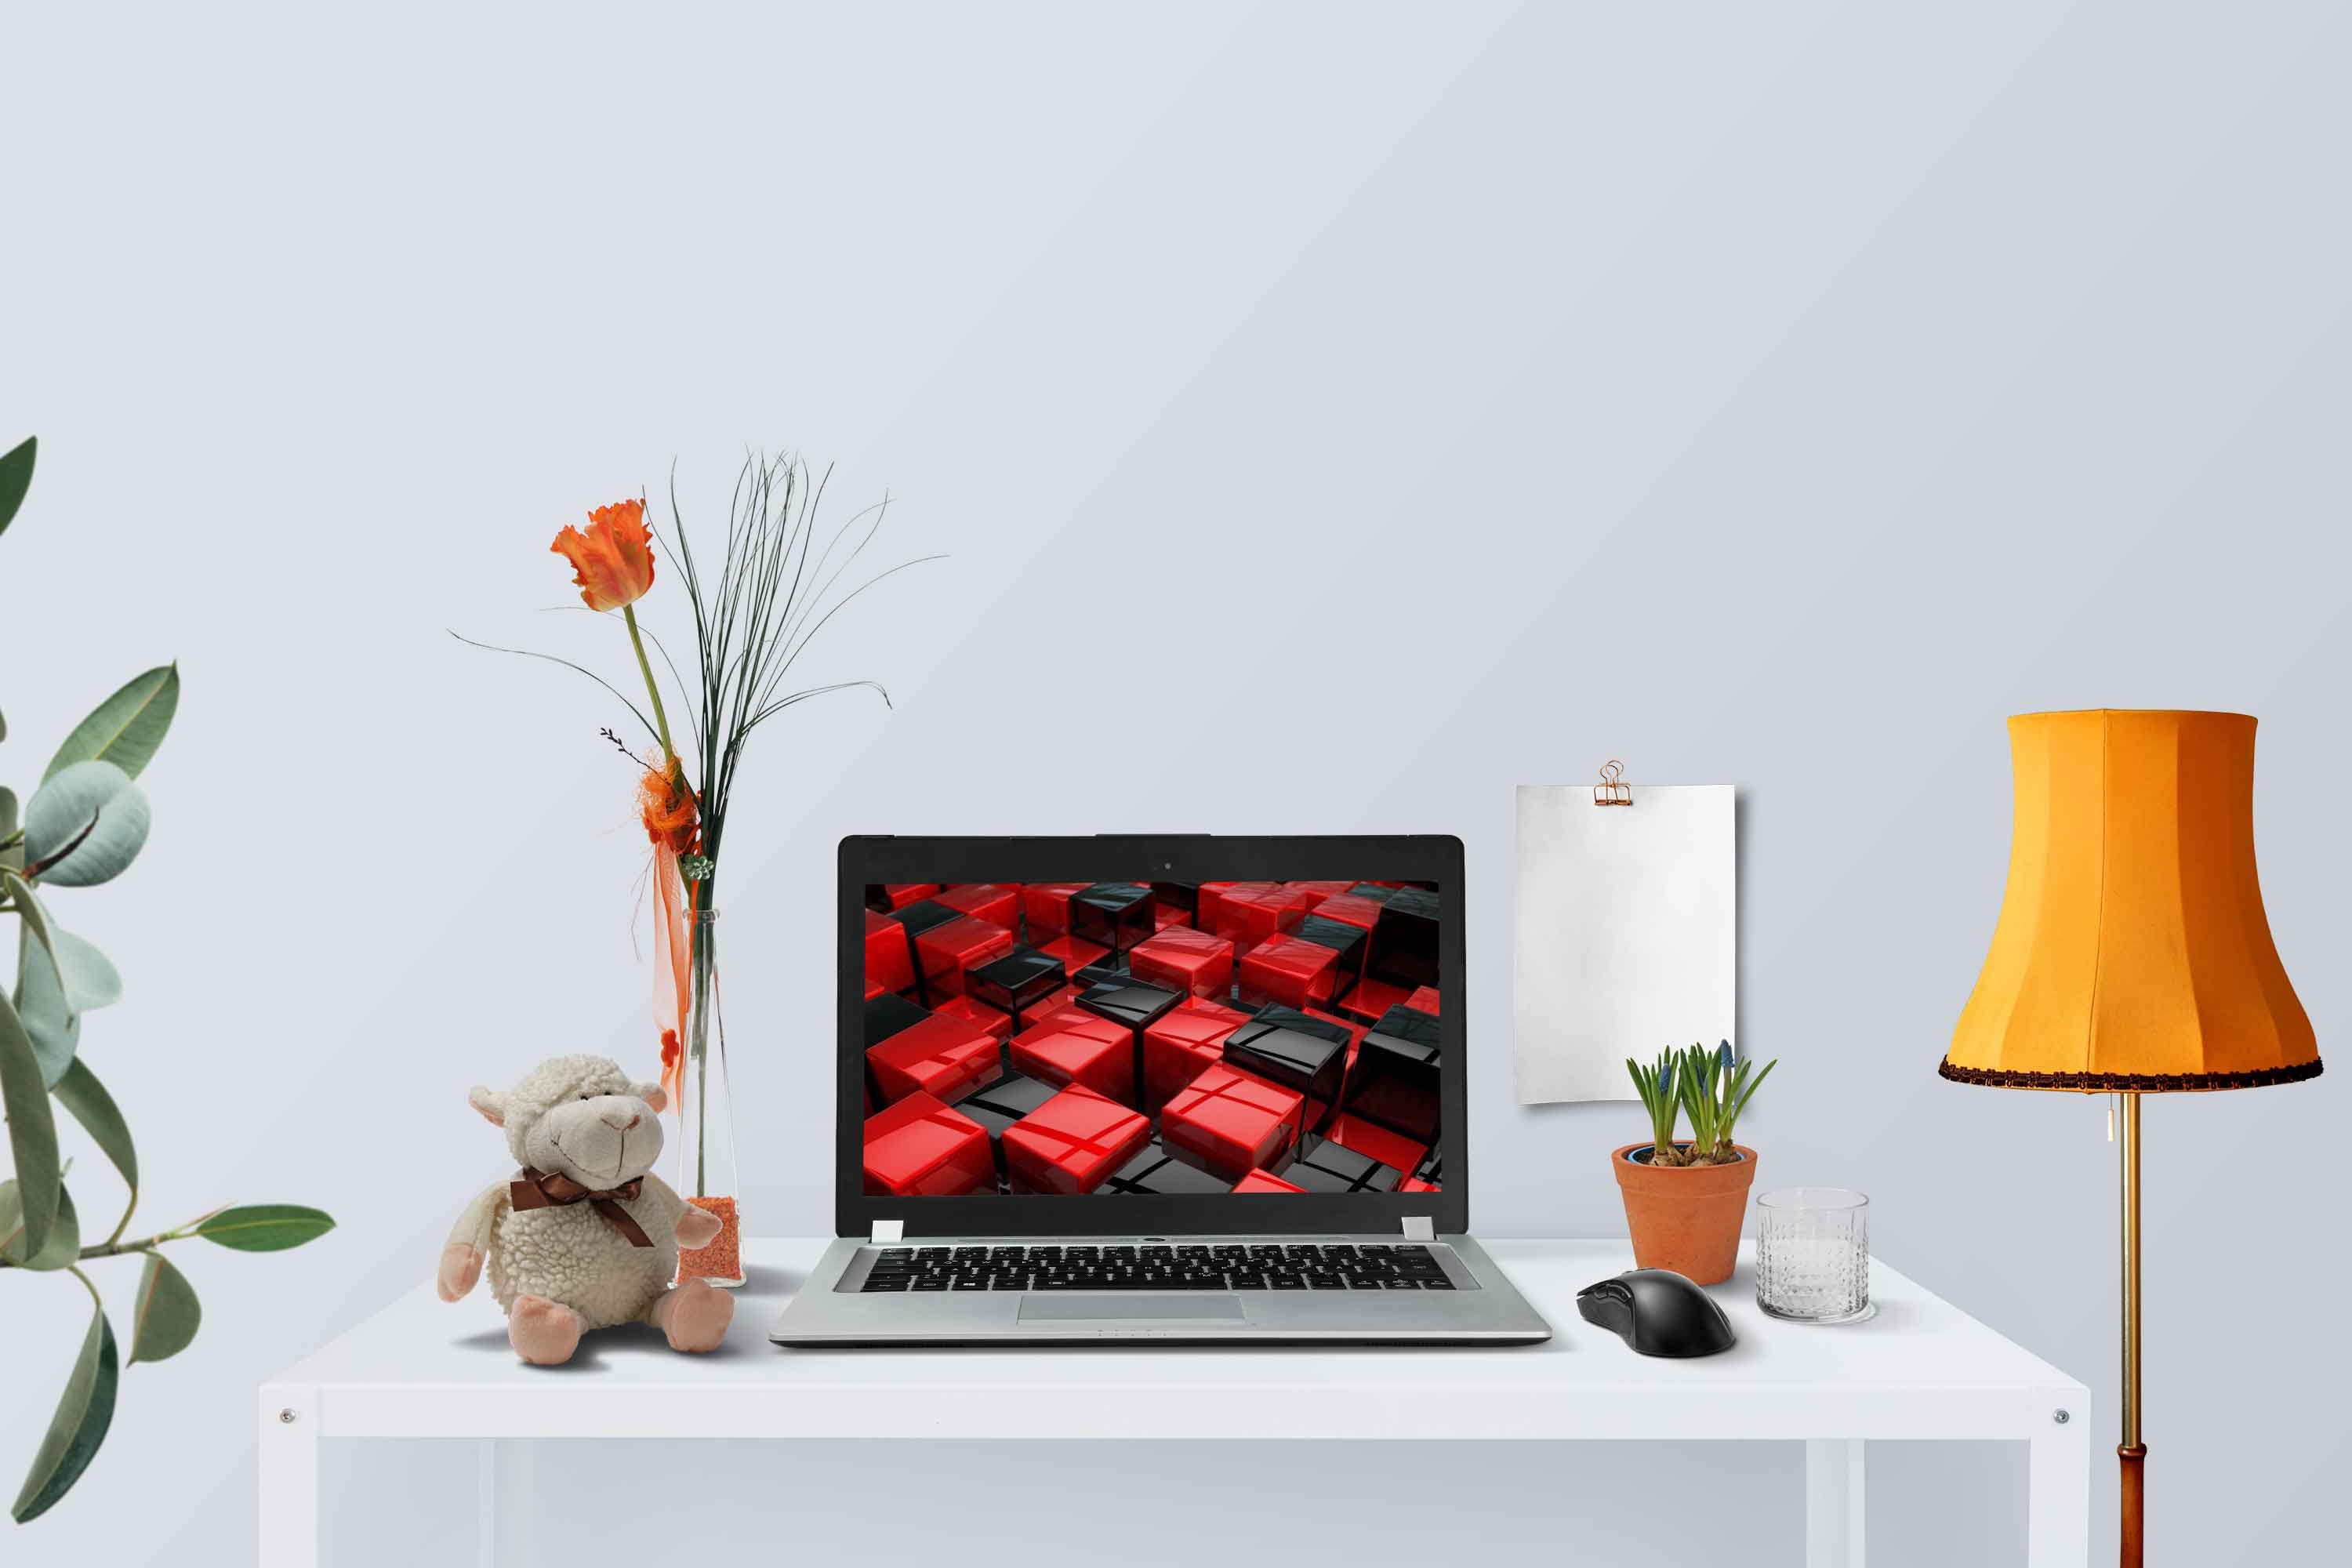 Free PSD Laptop Display Mockup